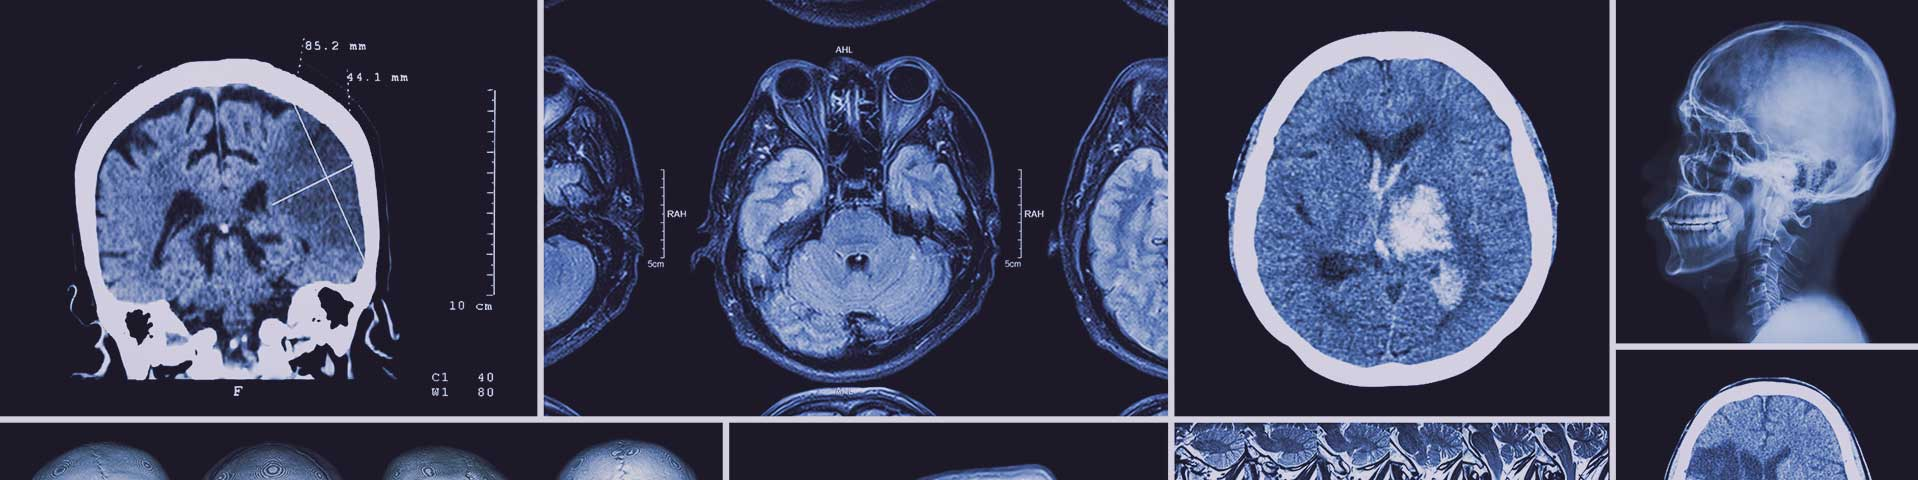 xrays of catastrophic brain injuries